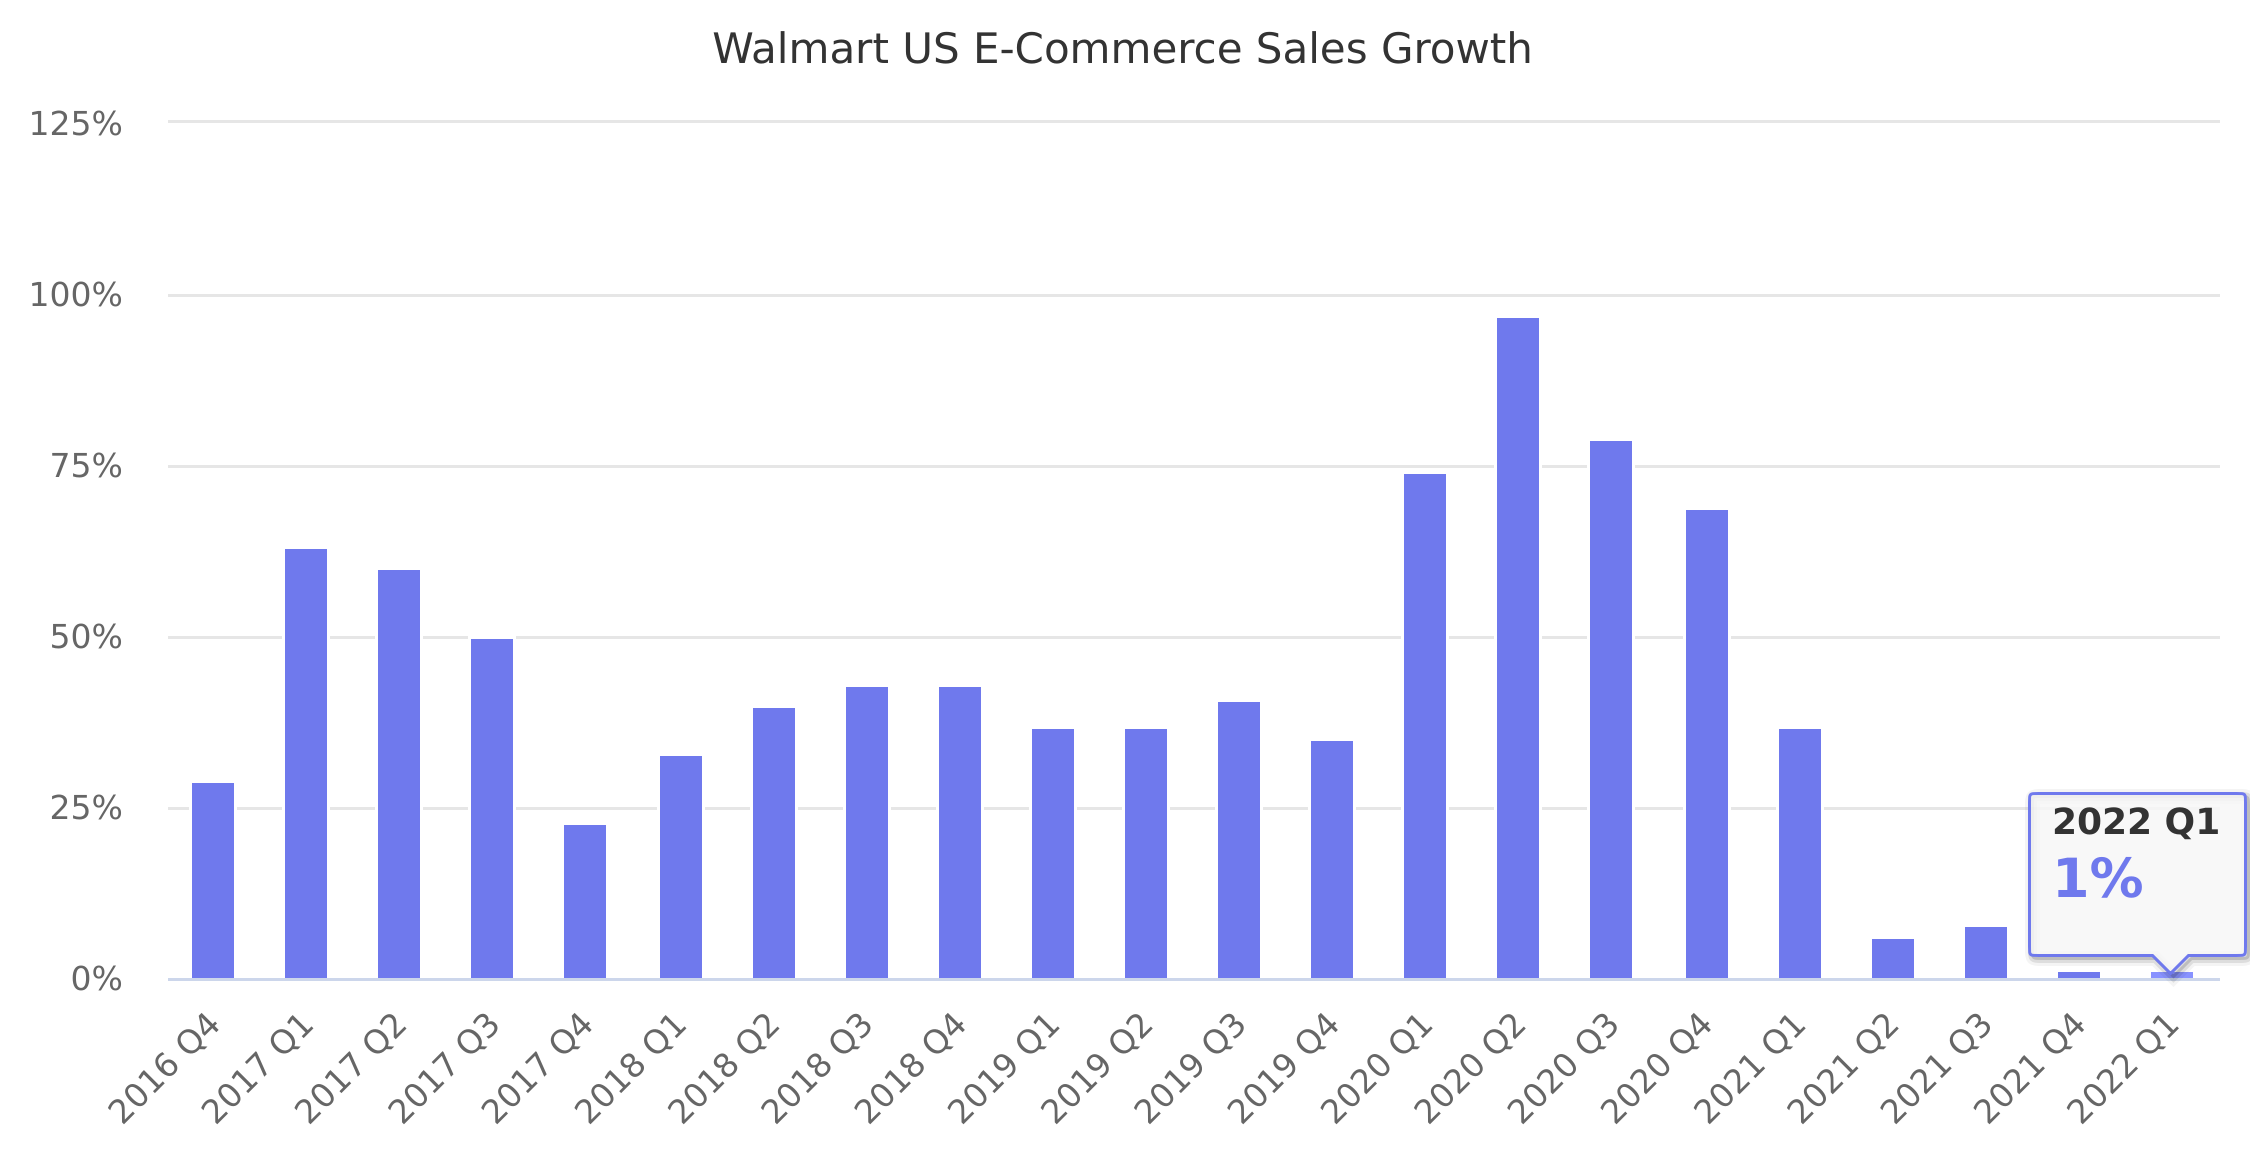 Walmart US E-Commerce Sales Growth 2016-2017 - Marketplace ...